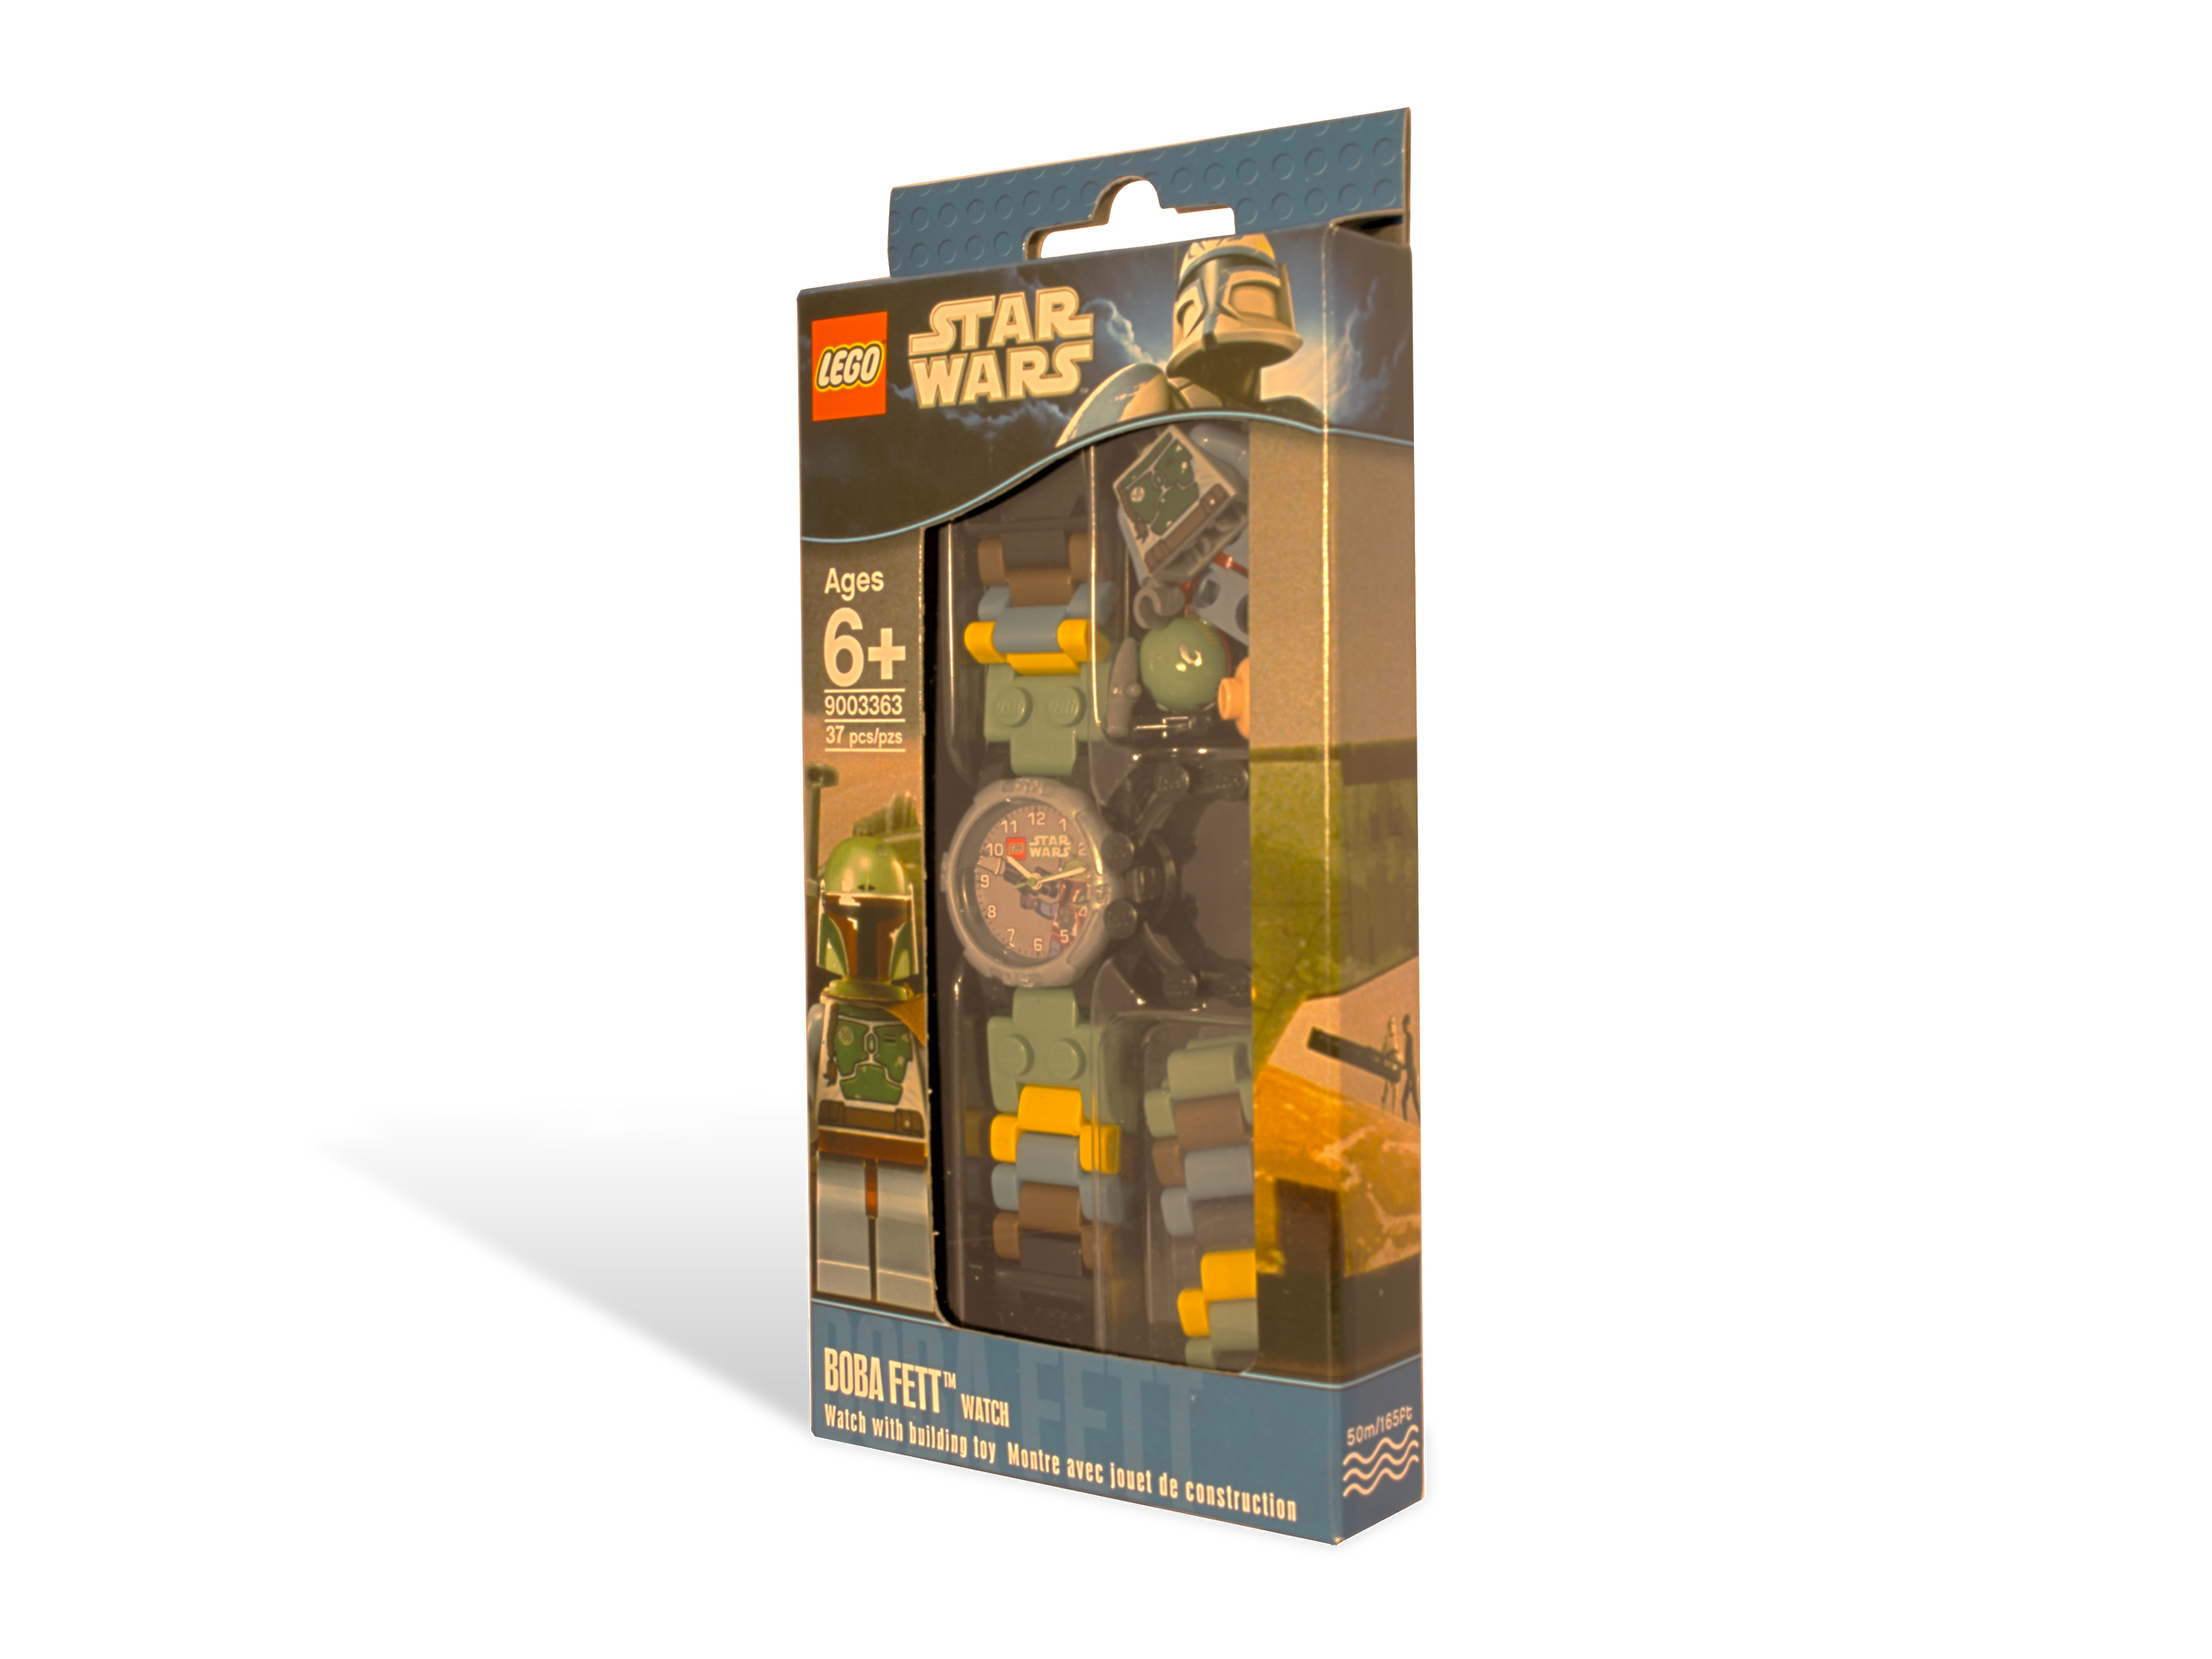 Lego Star Wars Boba Fett Minifigure Lego Star Wars With Boba Fett